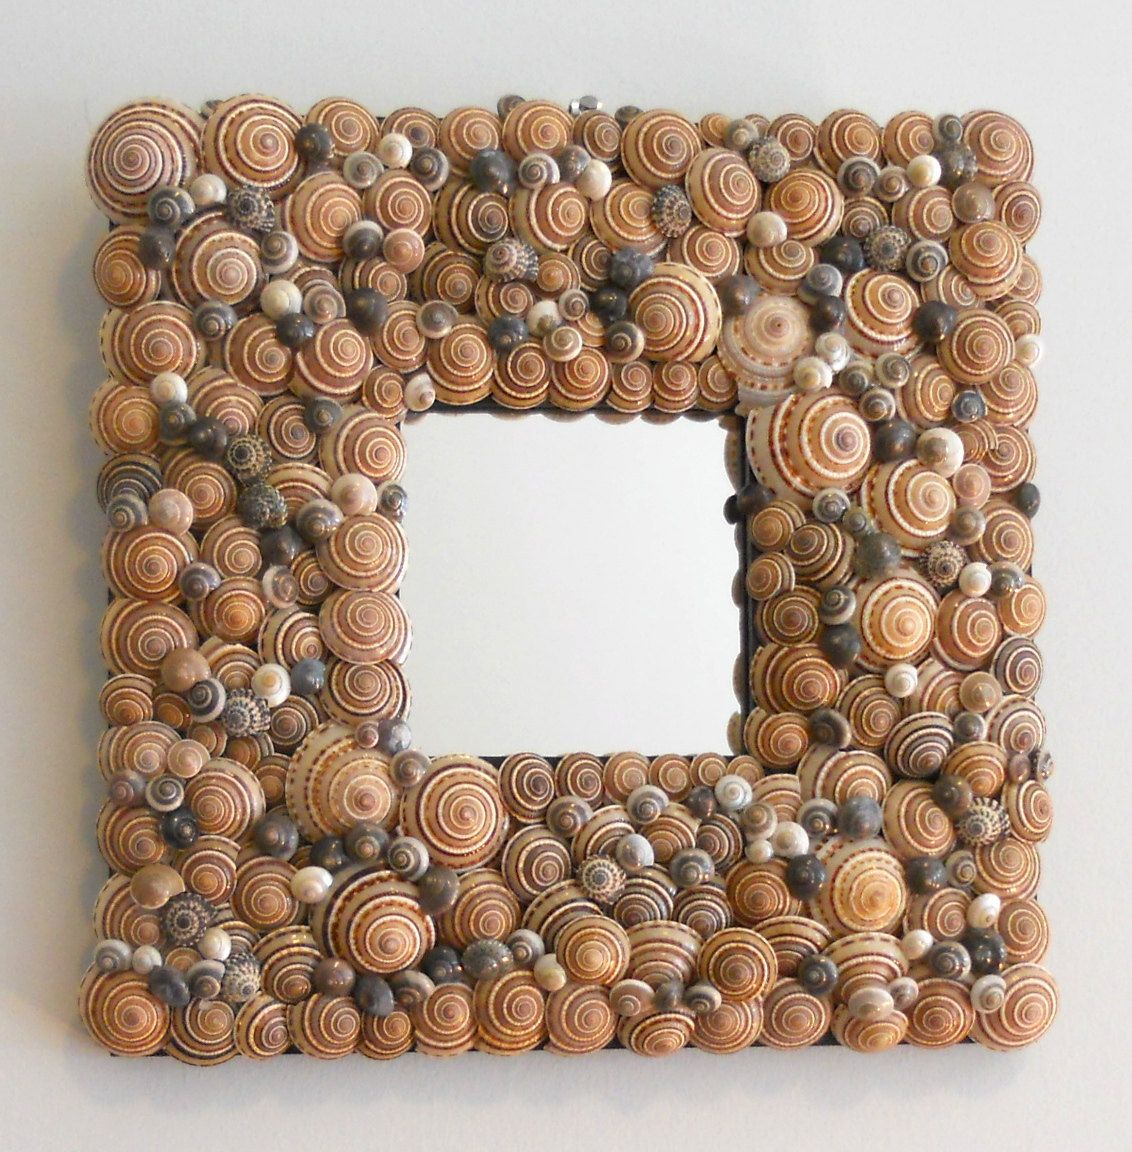 covered with seashells | Seashell mirror covered with mesmerizing ...